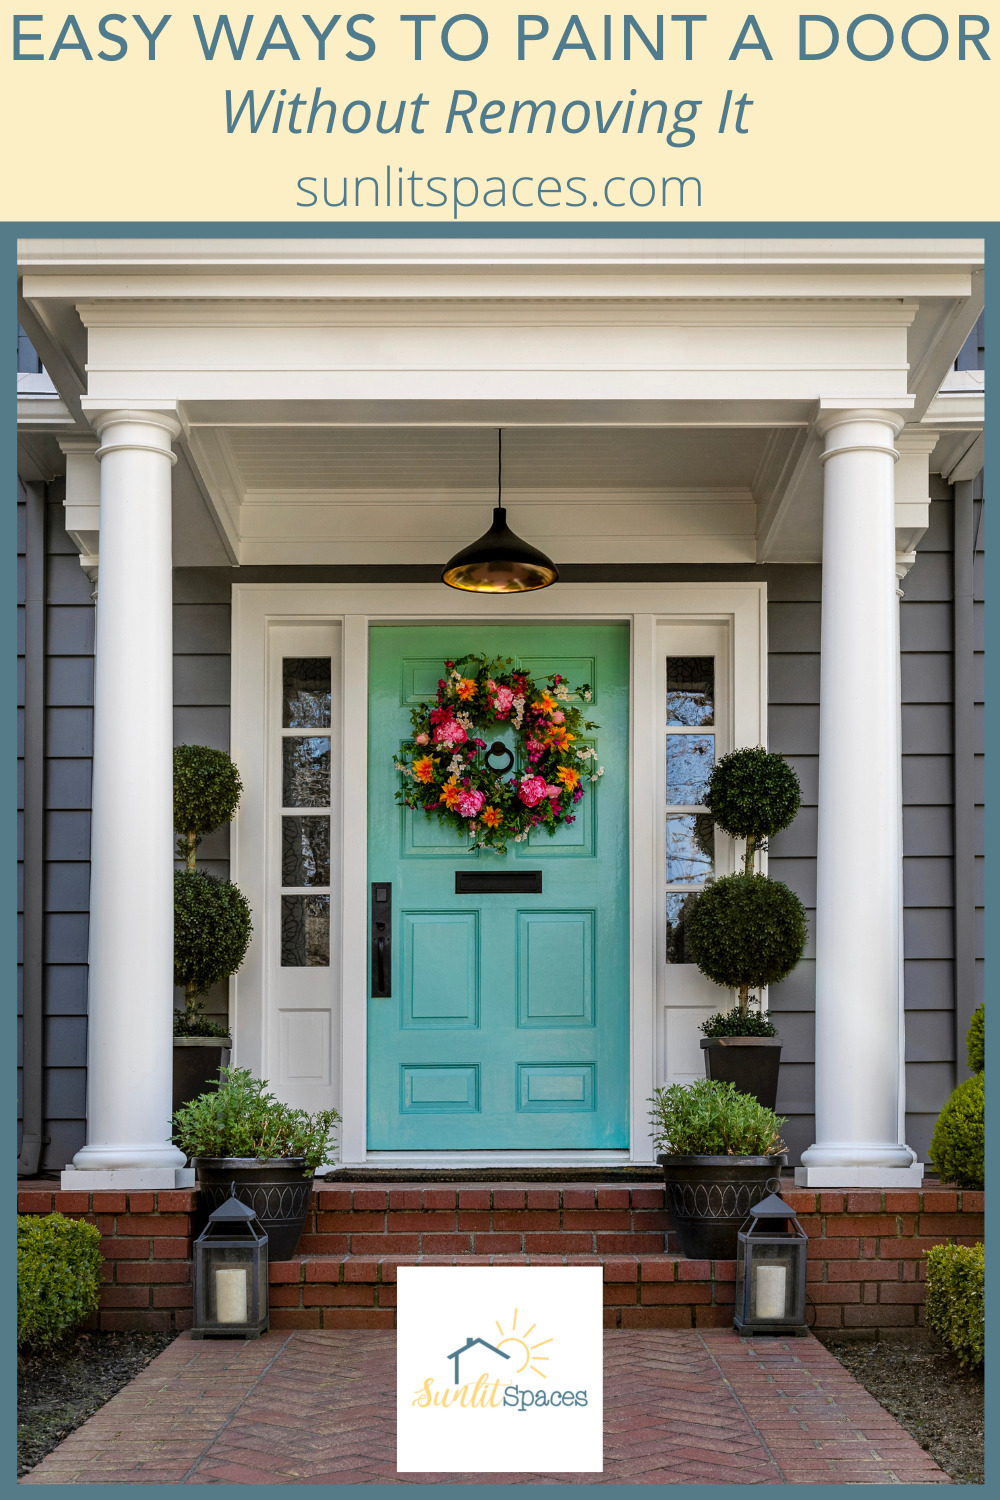 Sunlitspaces.com has all of the best and most creative ideas for curating a space that is perfect for you! Find amazing decor ideas and home improvement projects! If your front door needs a fresh paint makeover, check out this method for painting it without removing it!